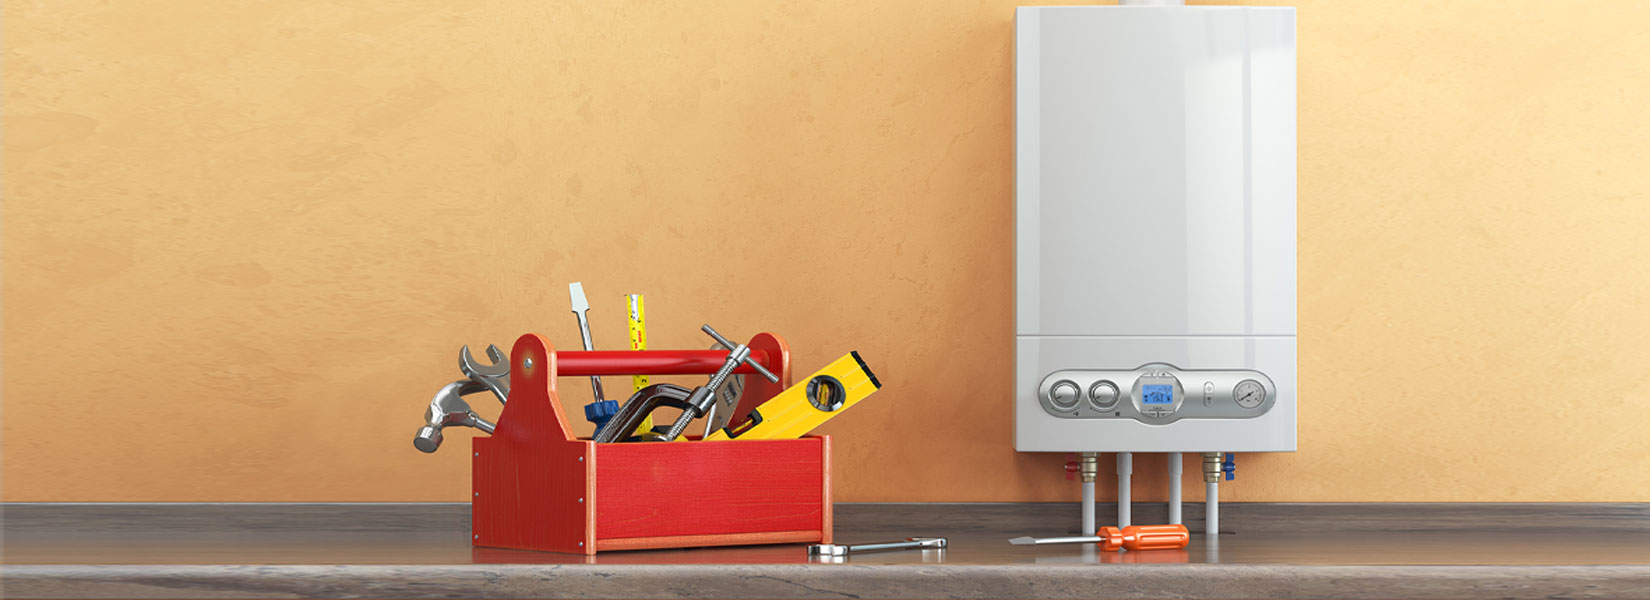 4 Common Problems With The Boiler